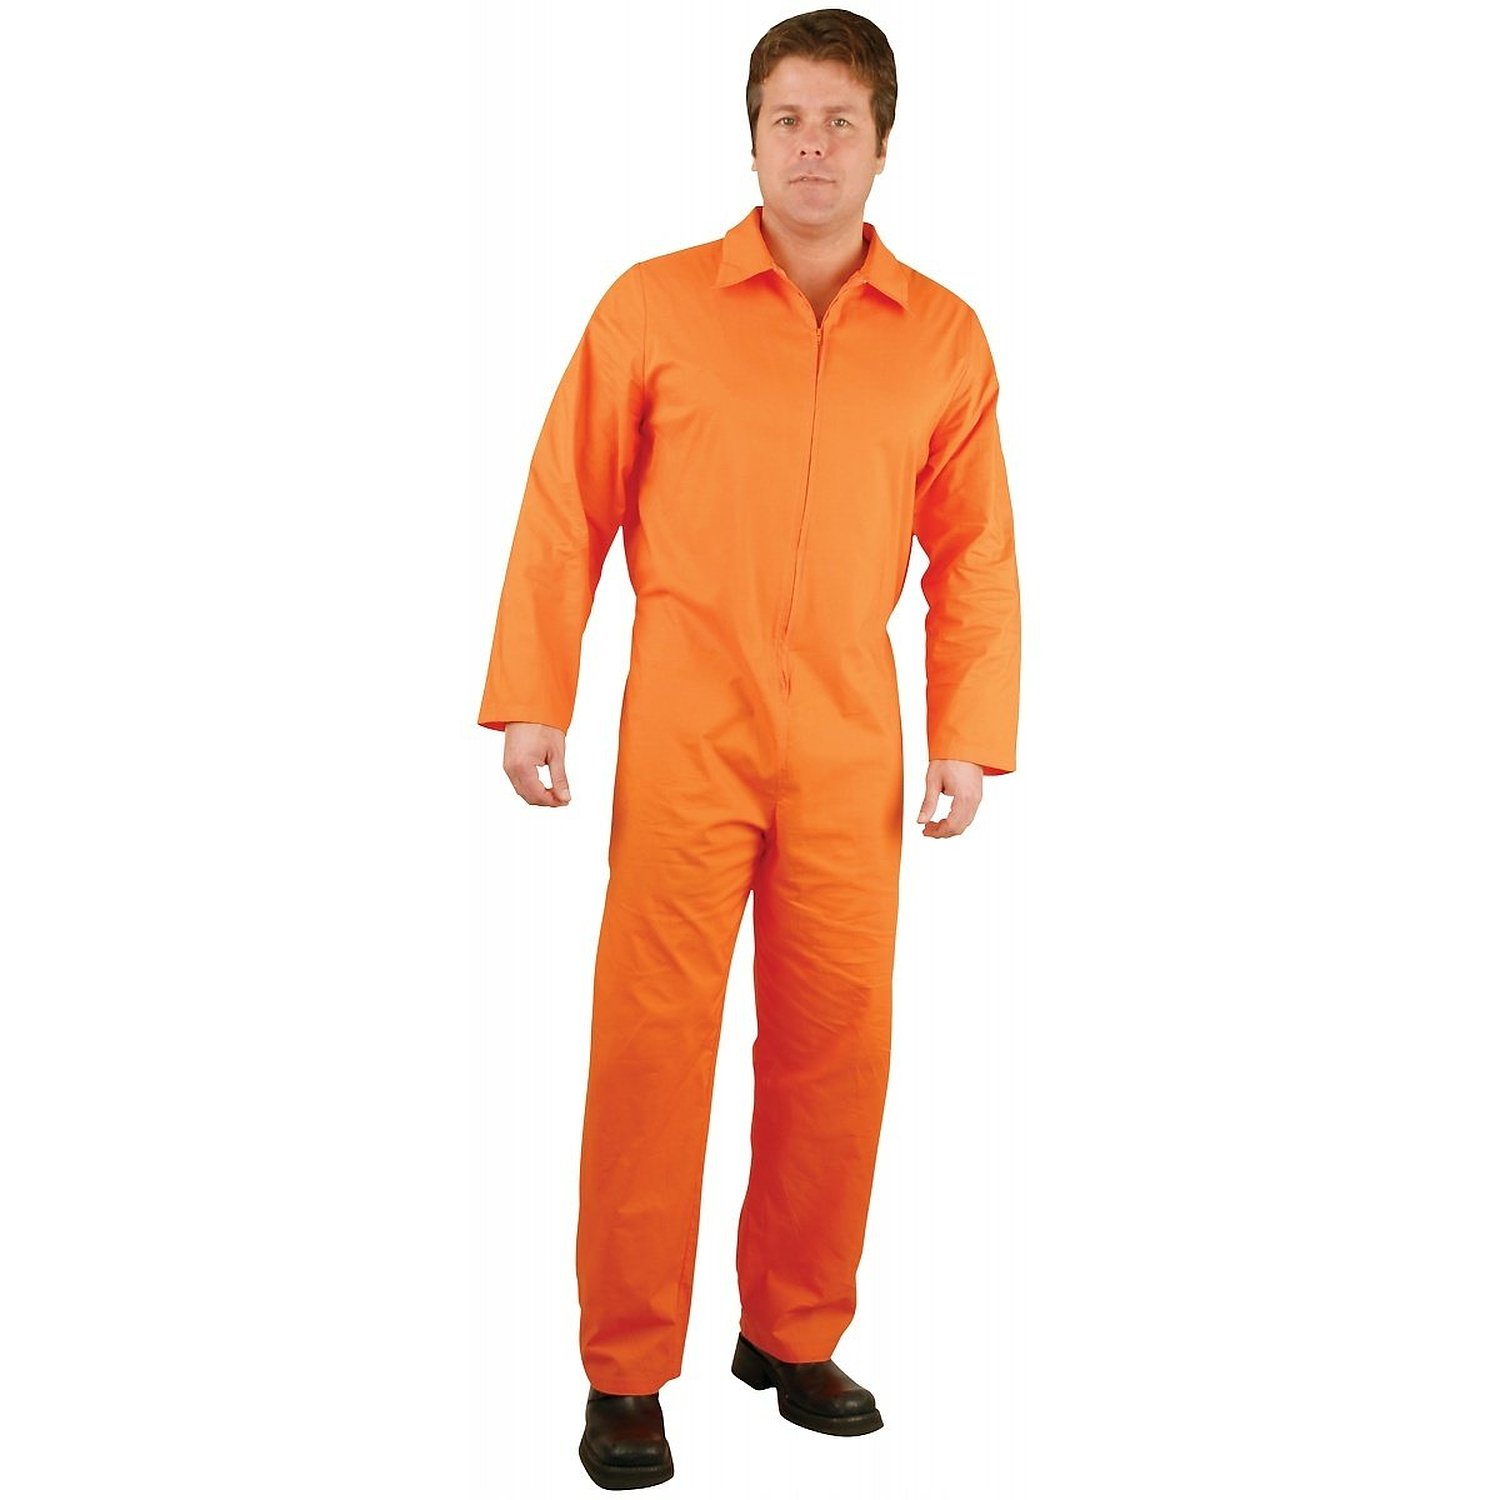 Mens Orange Jumpsuit Costume